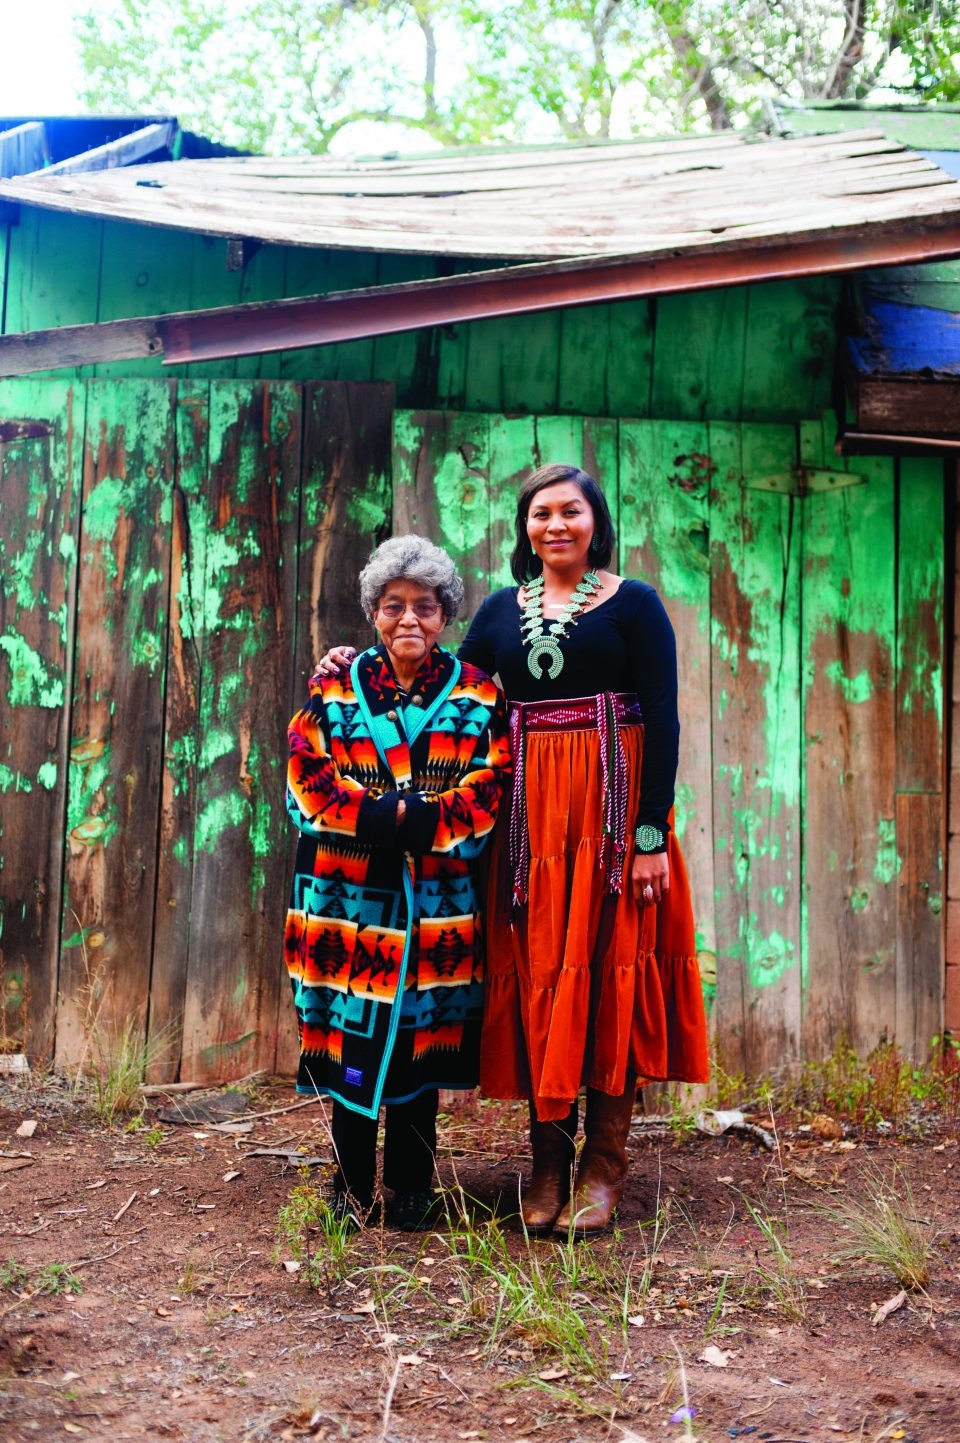 A young adult female and an older, short lady stand together, both wear bright Navajo dress; a wooden shack, partially painted green, is behind them.